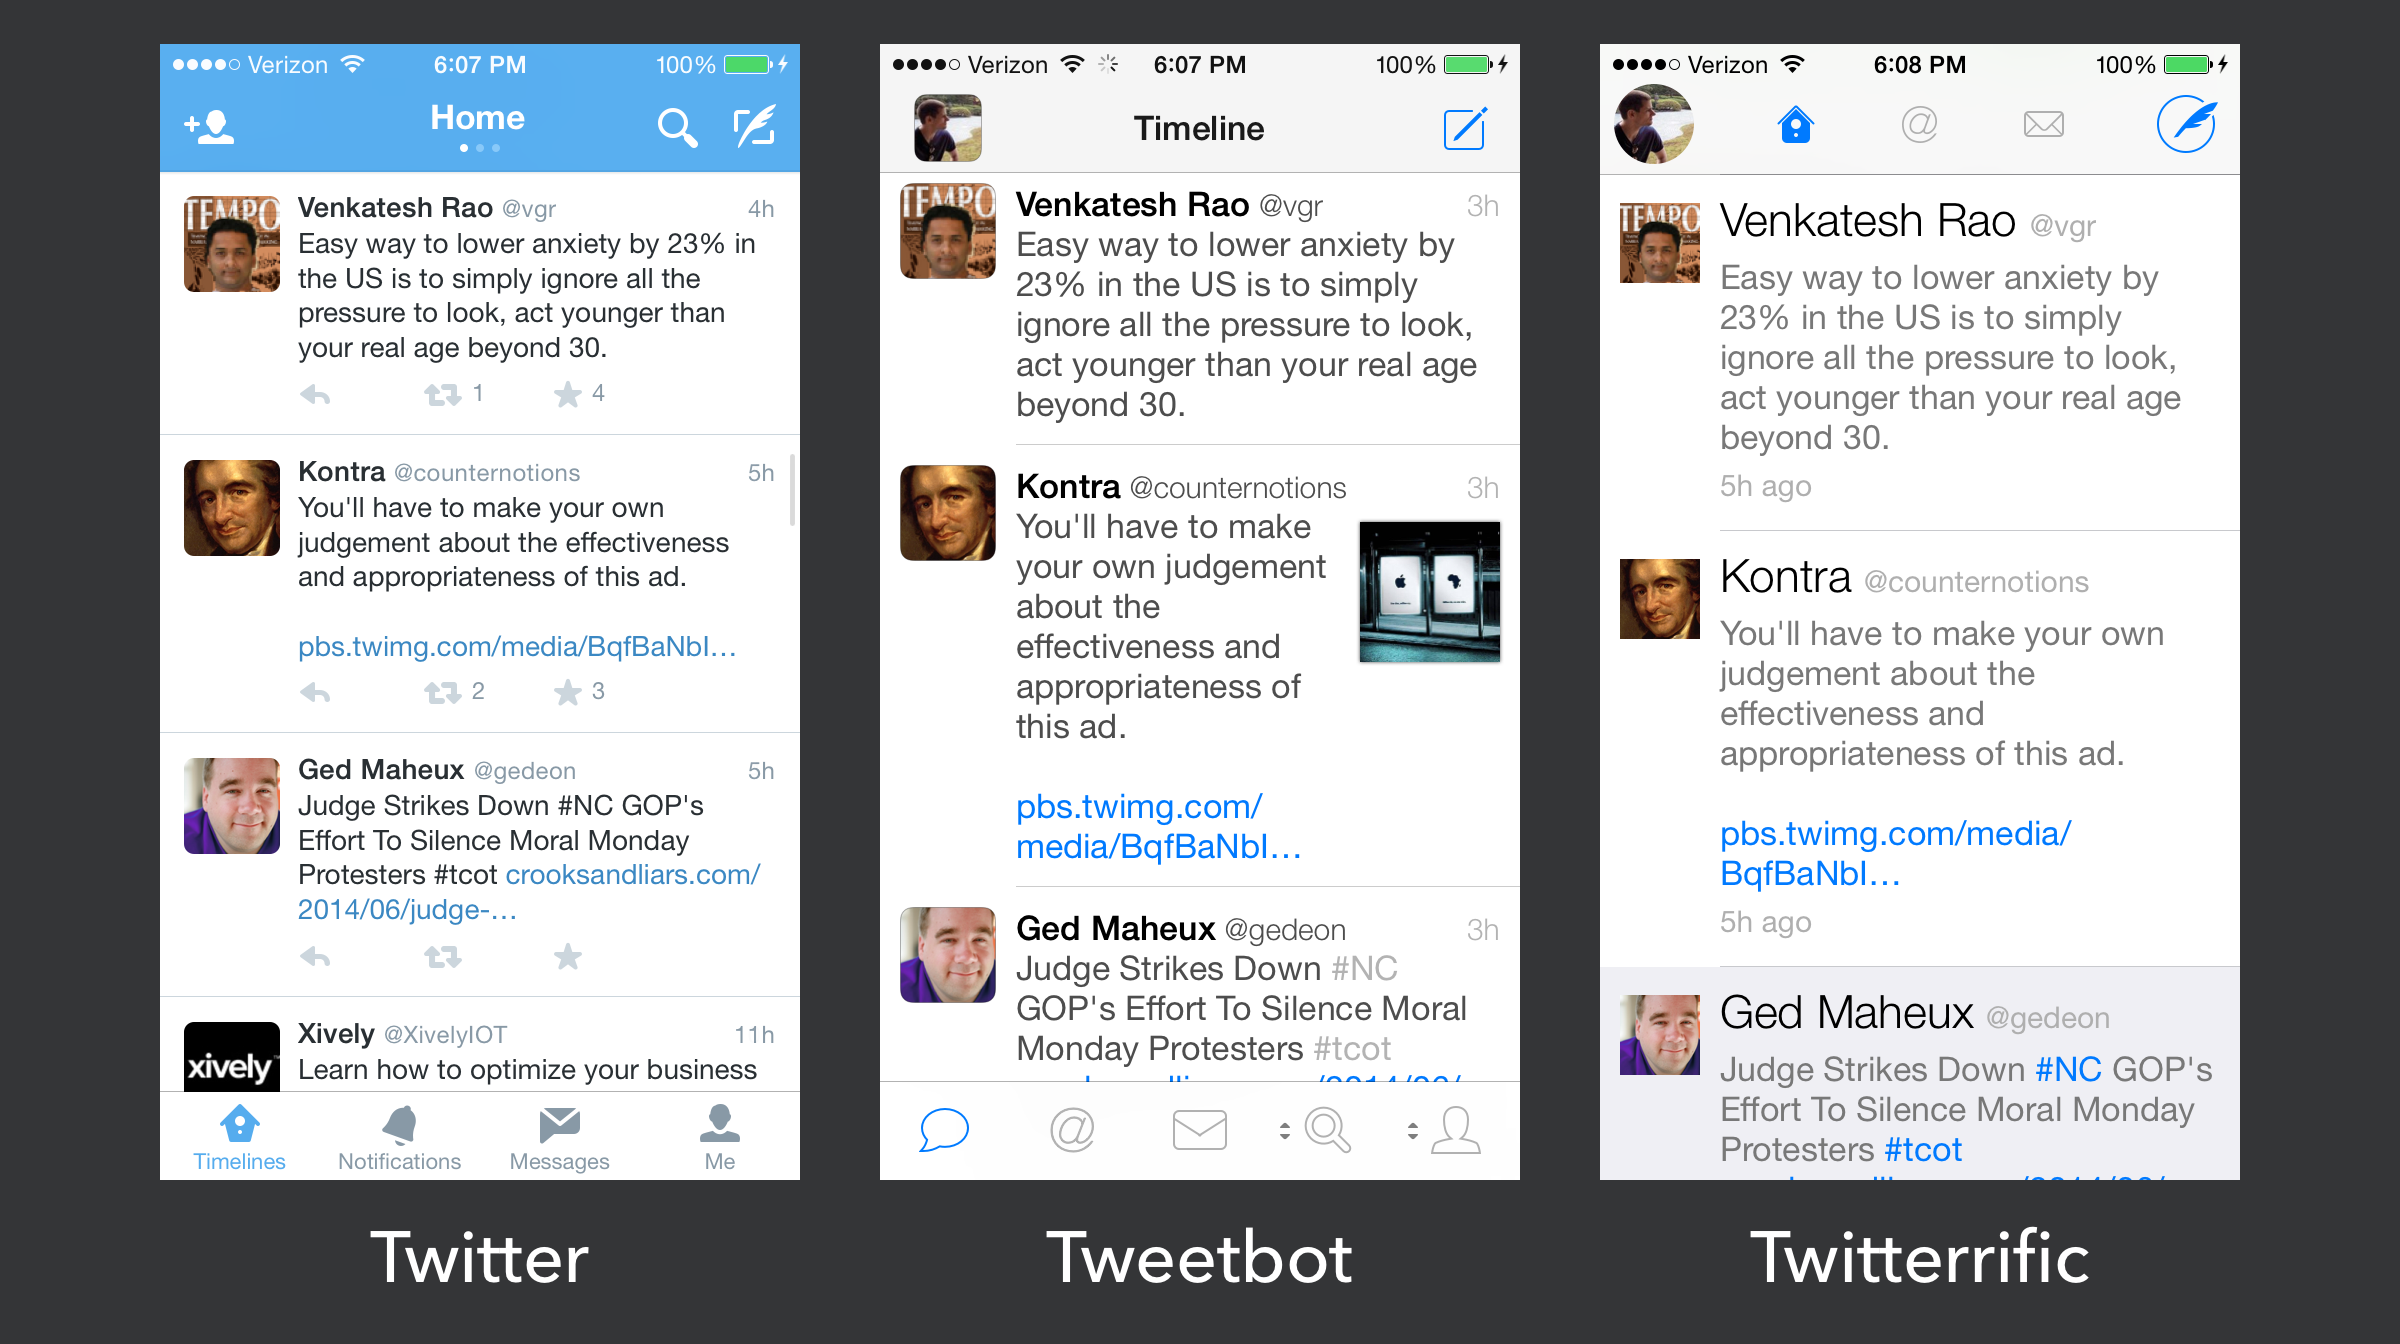 iOS Twitter clients shortly afteriOS 7 launched.